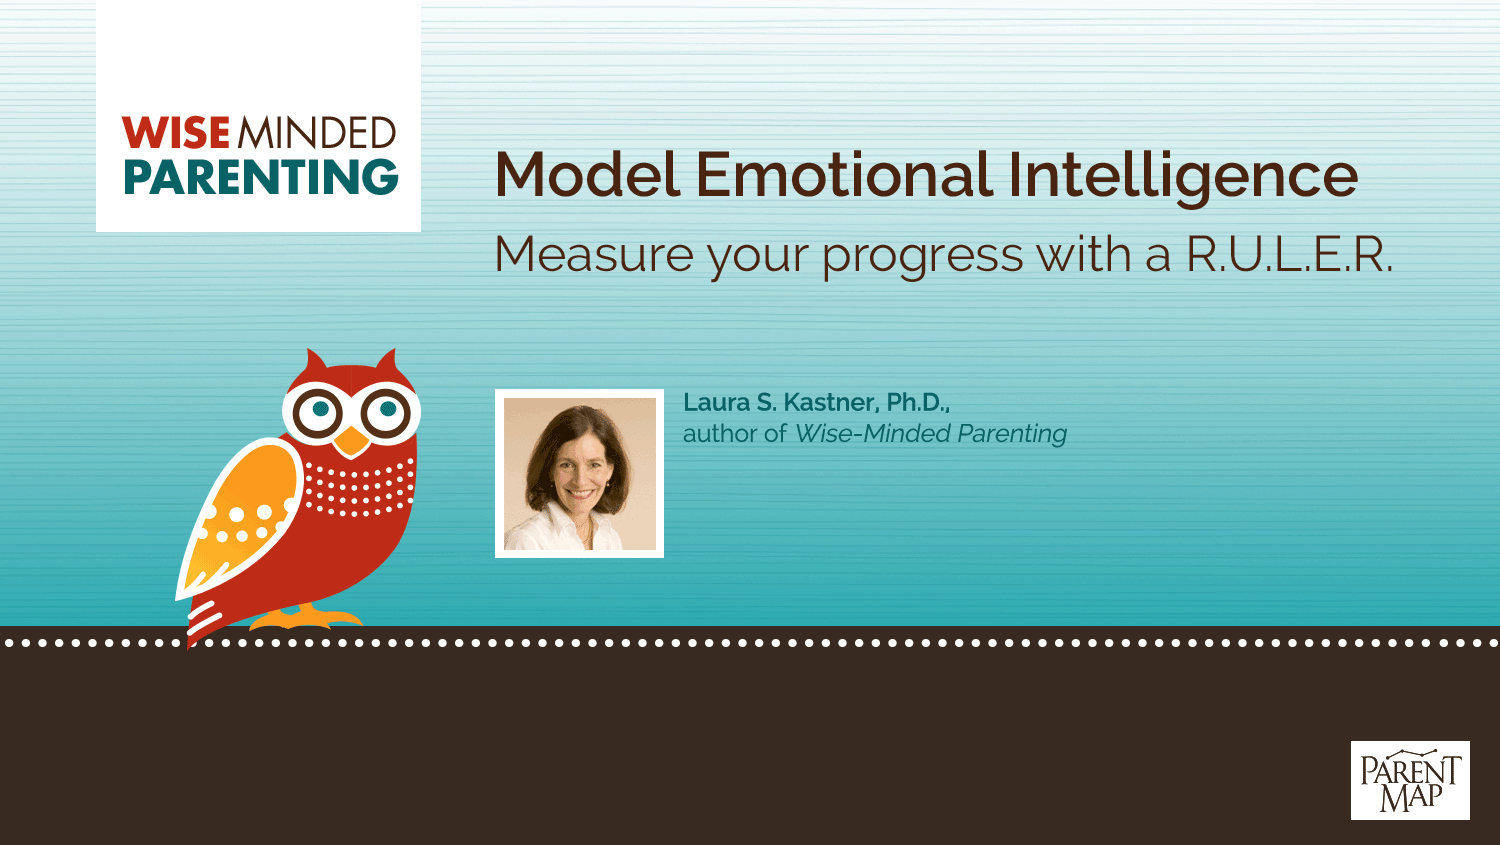 Model Emotional Intelligence